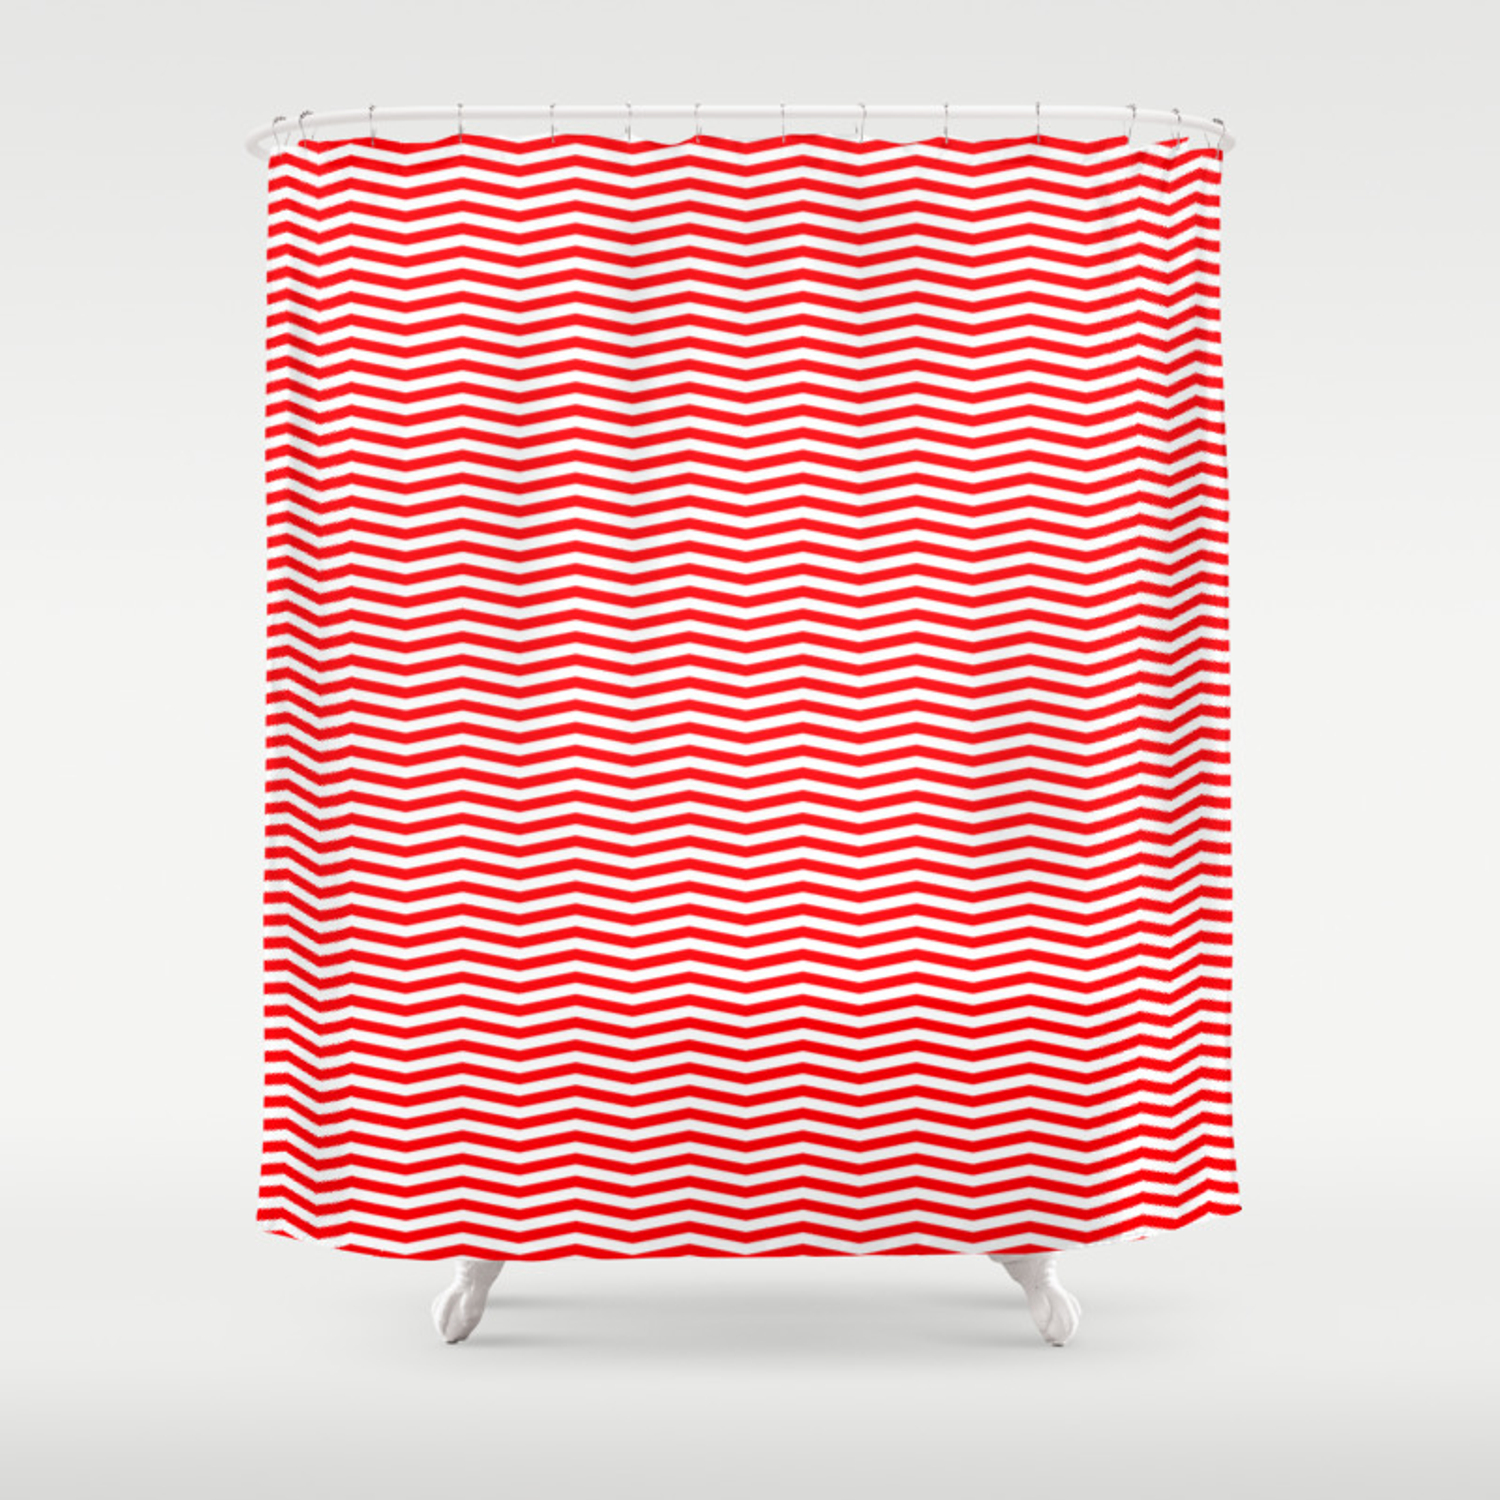 Red And White Christmas Wavy Chevron Stripes Shower Curtain